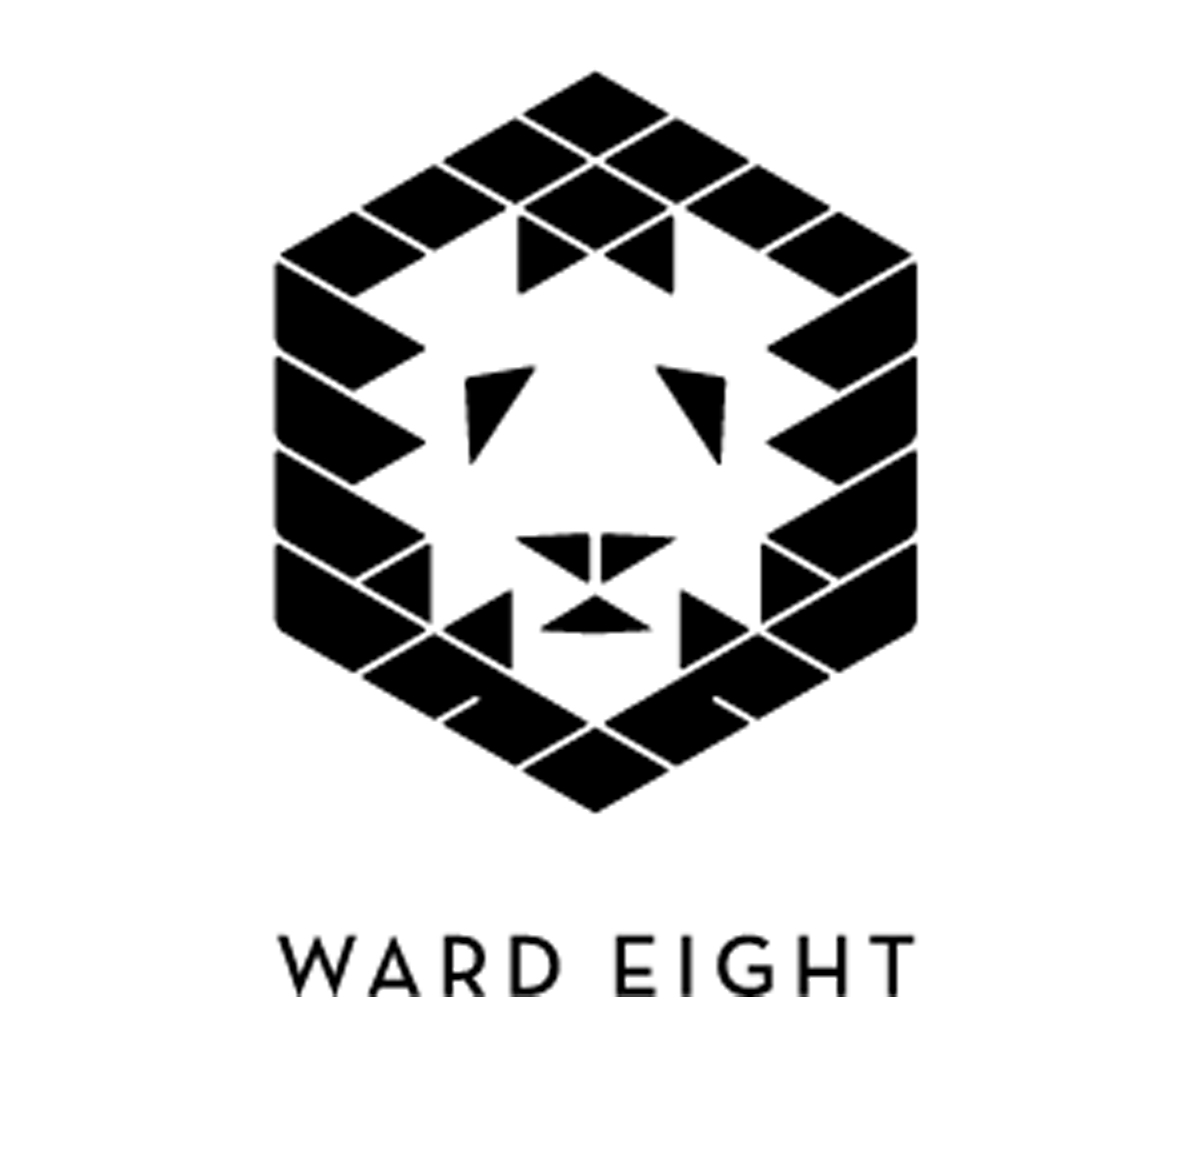 Ward Eight